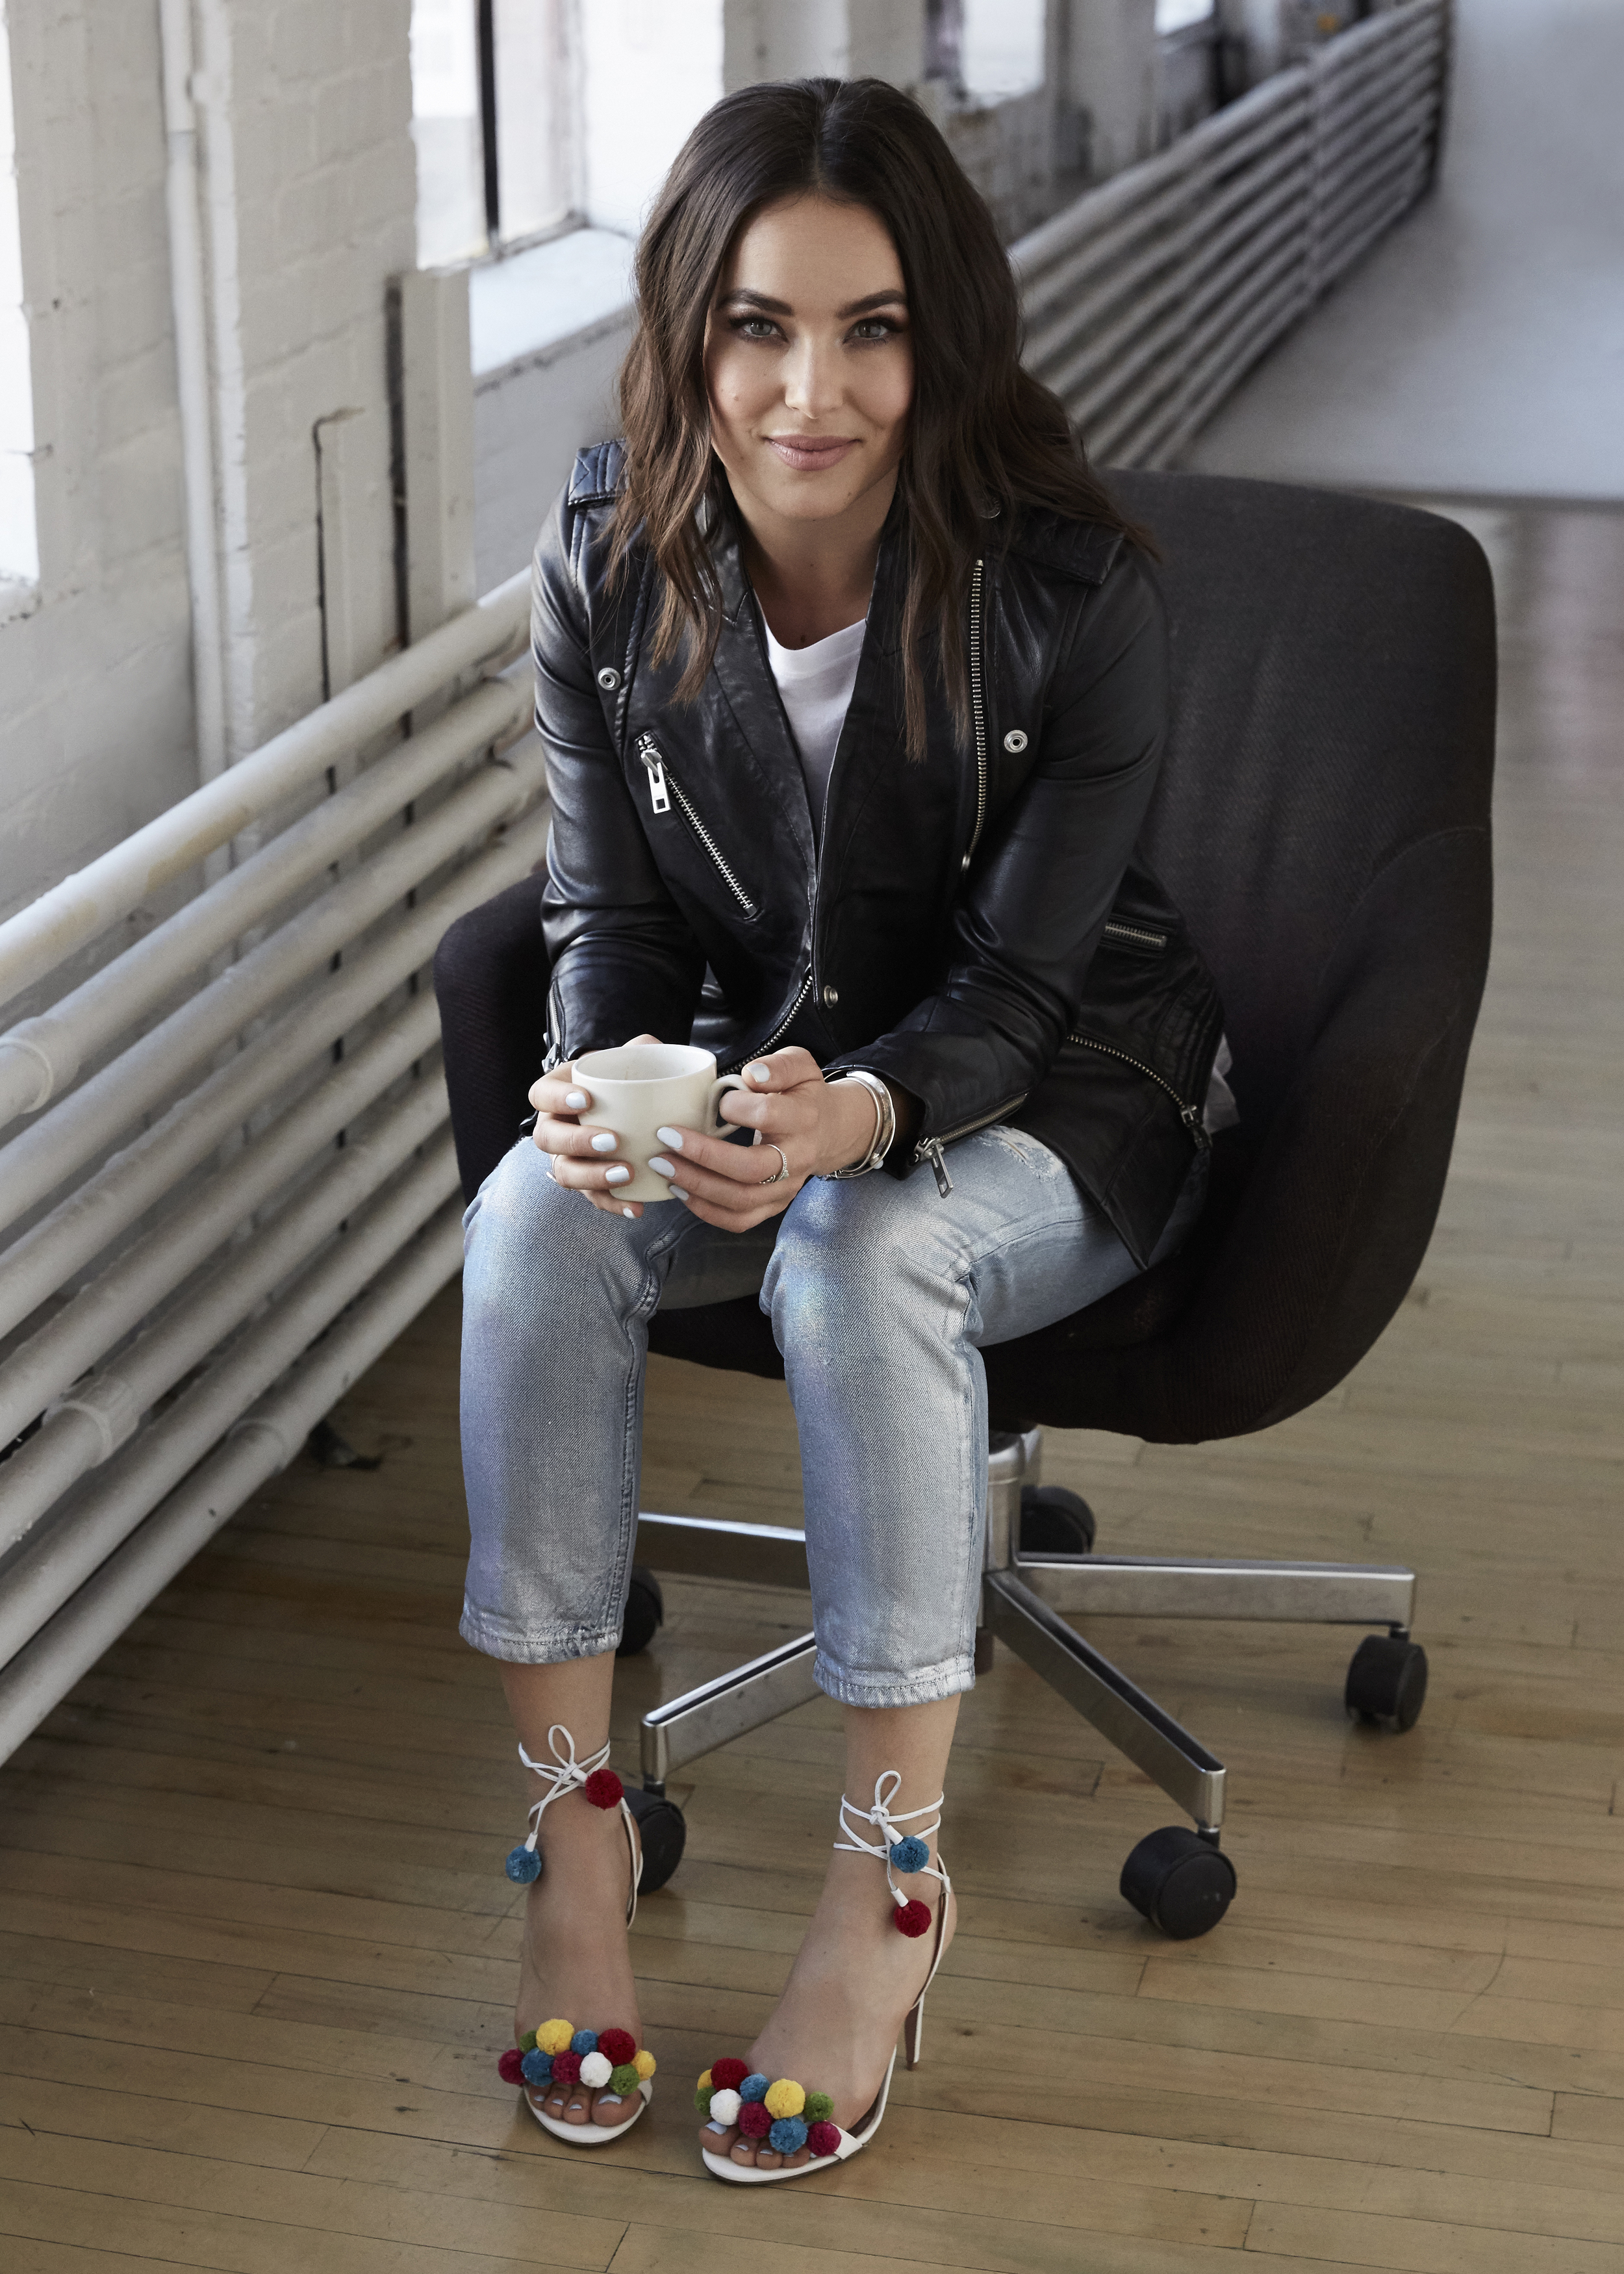 Favorite look of April! The metallic jeans, pom-pom shoes, classic leather and of course the best accessory, COFFEE.